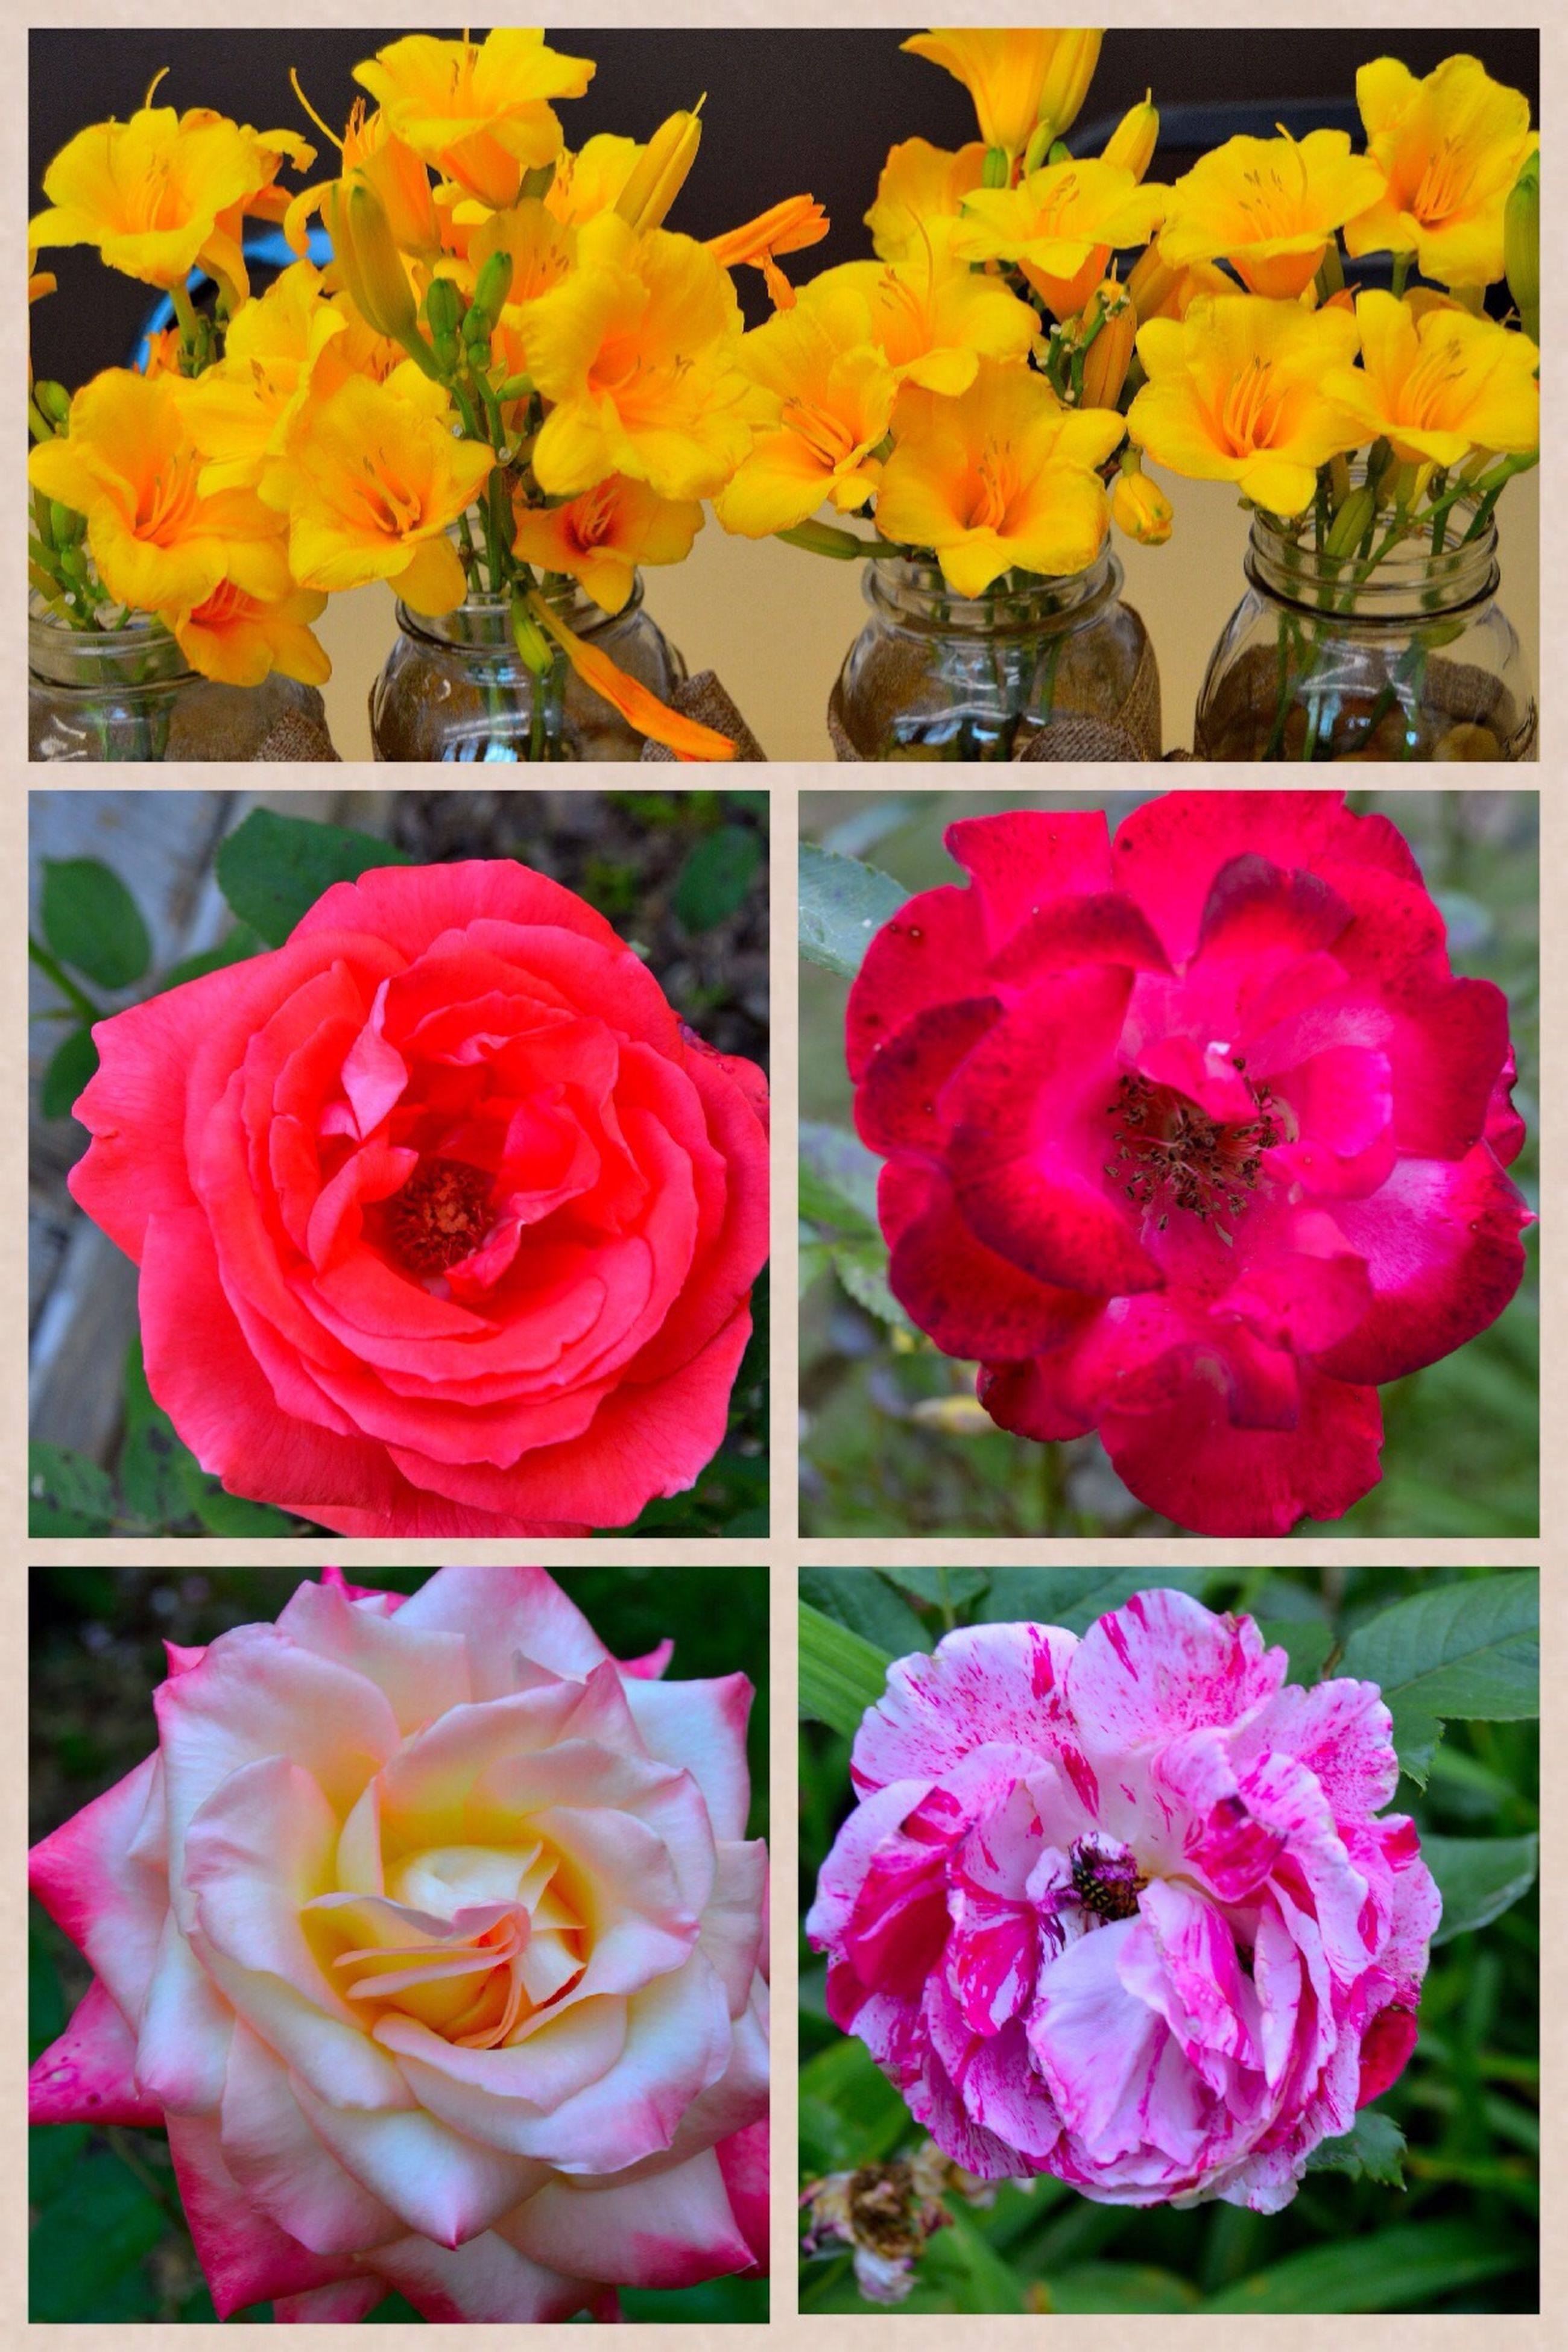 flower, petal, freshness, fragility, flower head, beauty in nature, transfer print, growth, nature, blooming, rose - flower, yellow, pink color, close-up, blossom, multi colored, bouquet, auto post production filter, bunch of flowers, vibrant color